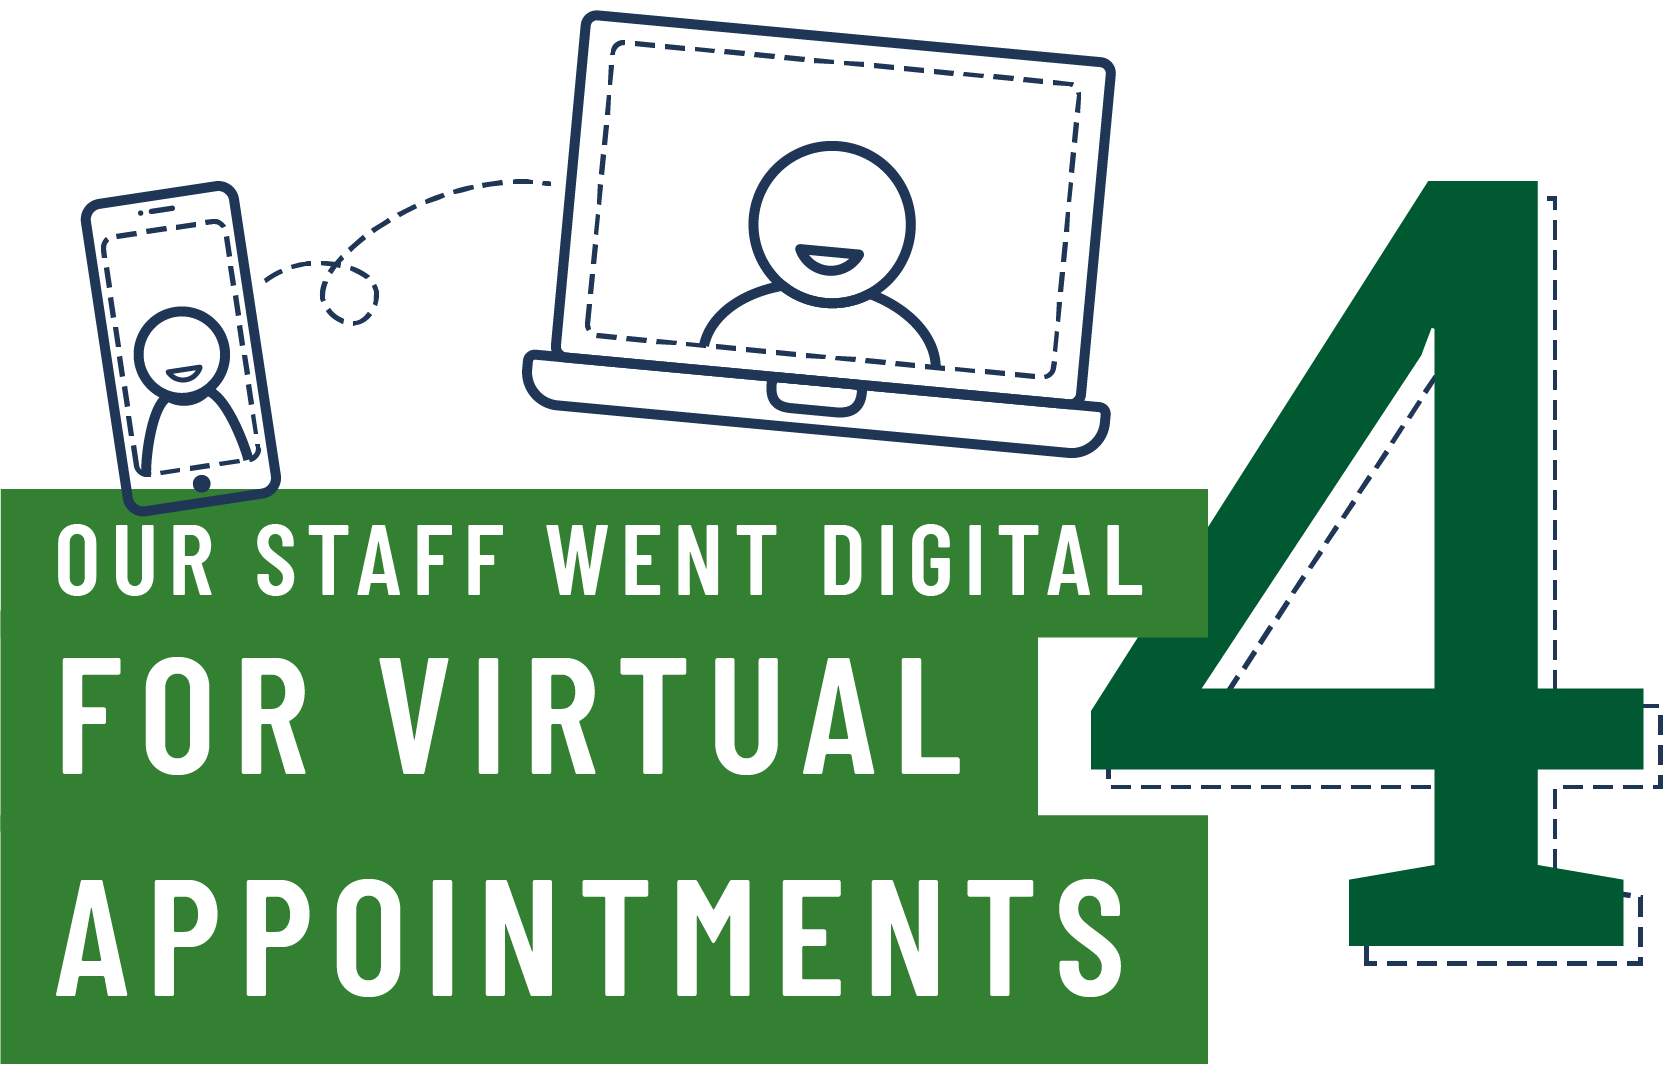 4. Our staff went digital for virtual appointments